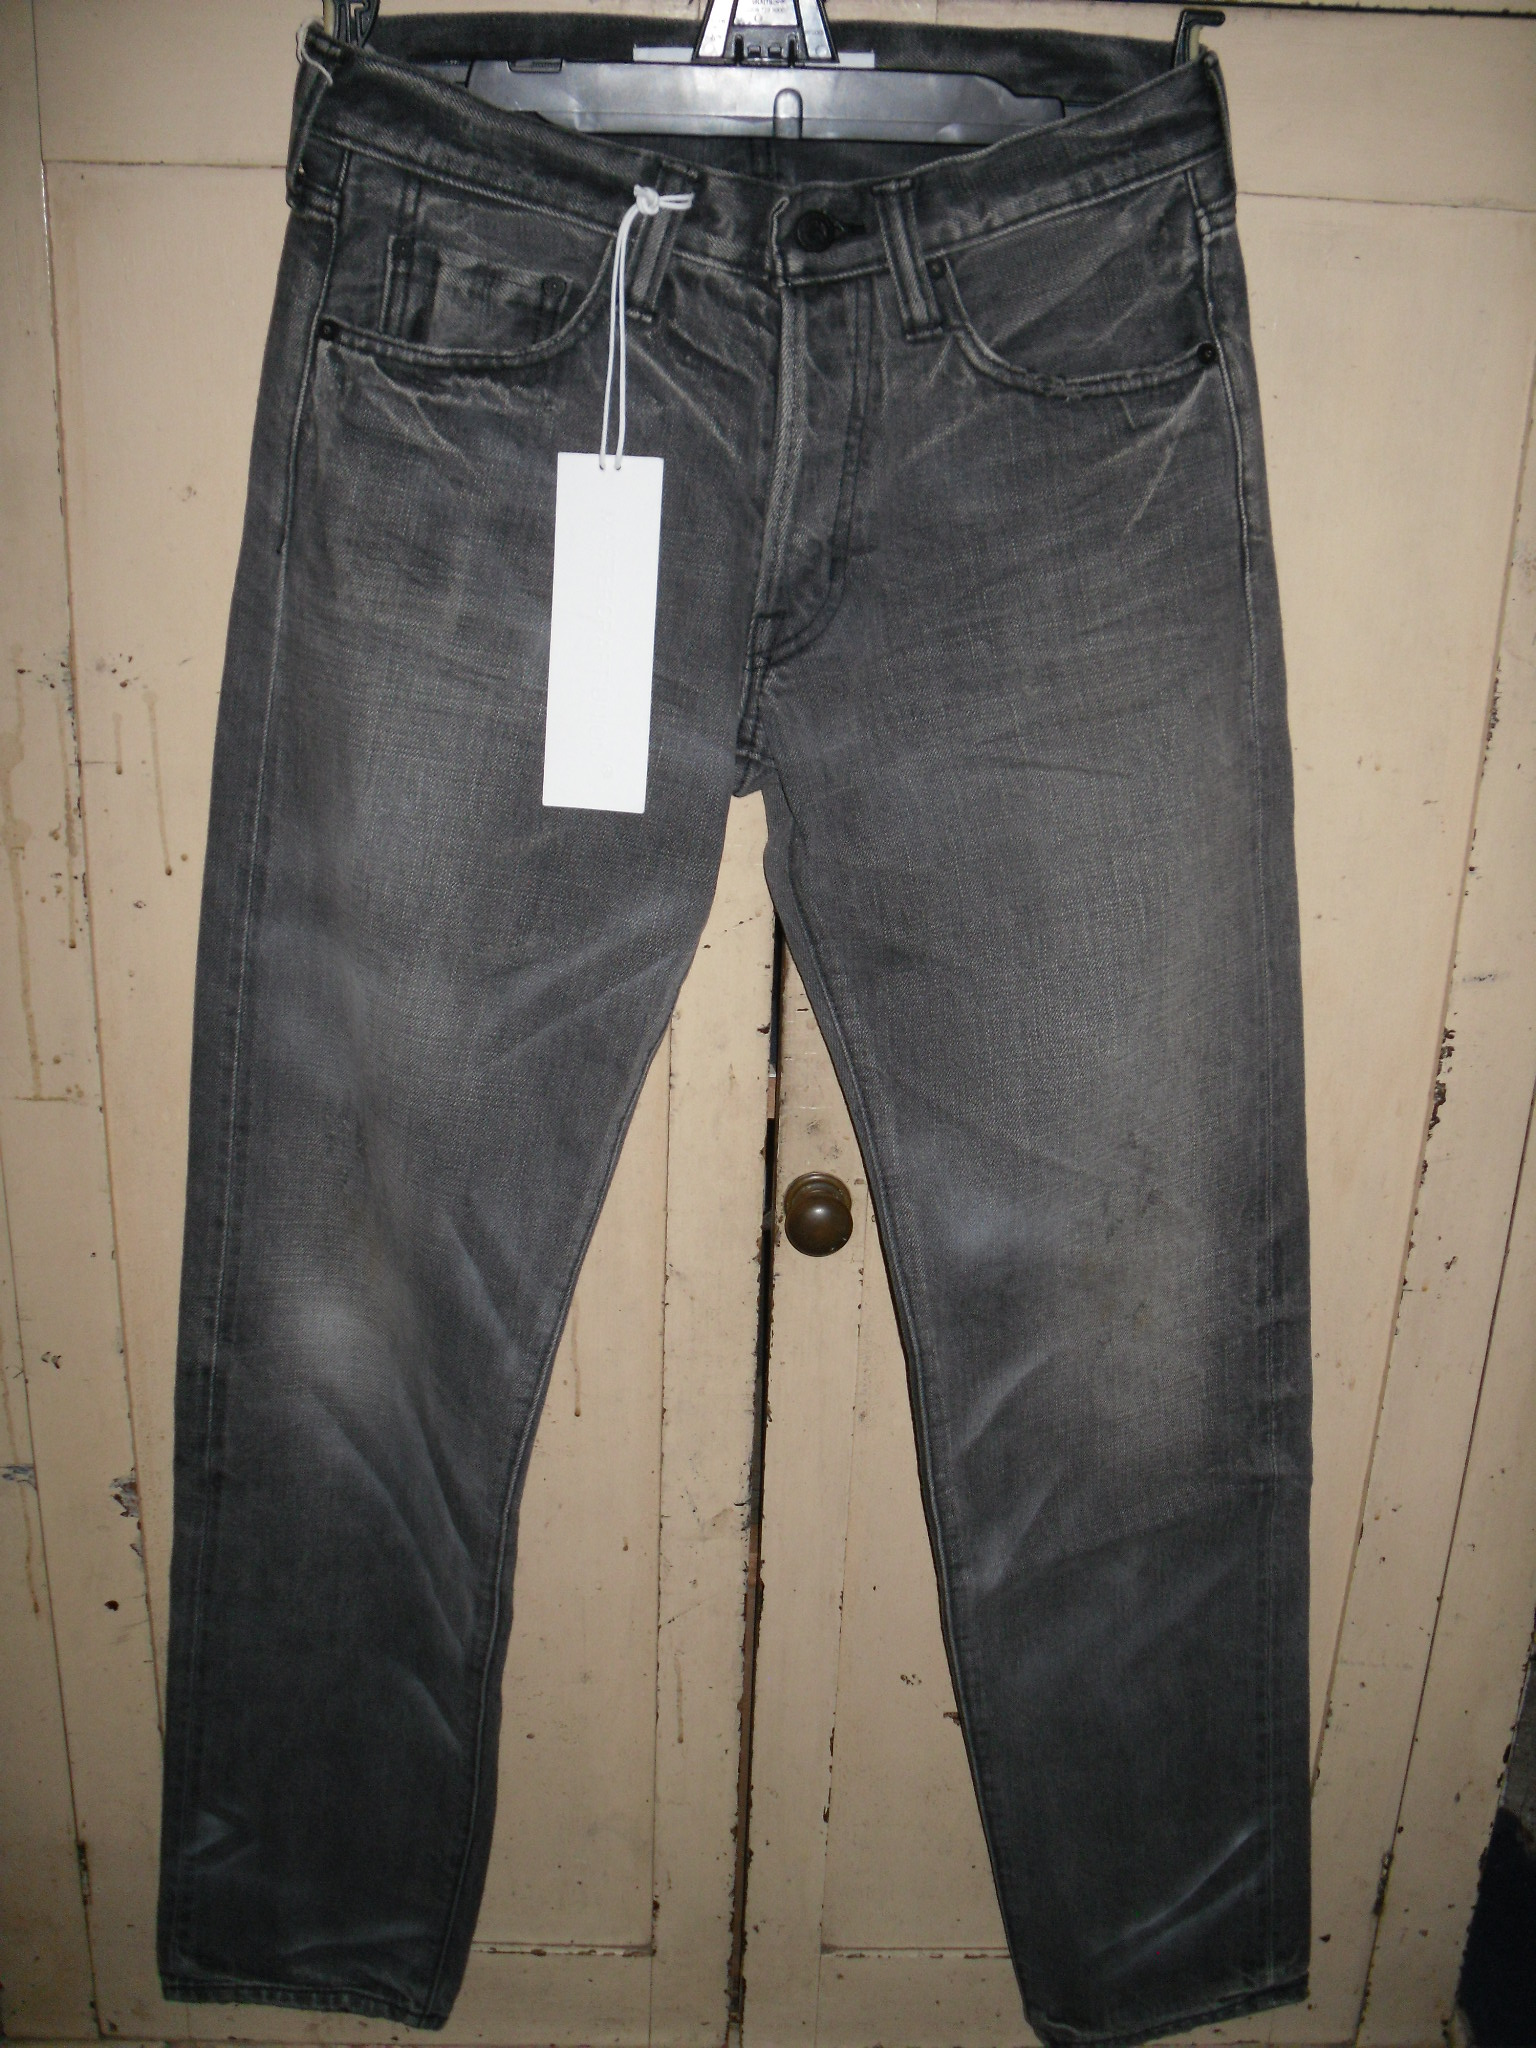 6bca4826 Mastercraft Union M64d01 Relaxed Taper Jeans   Grailed